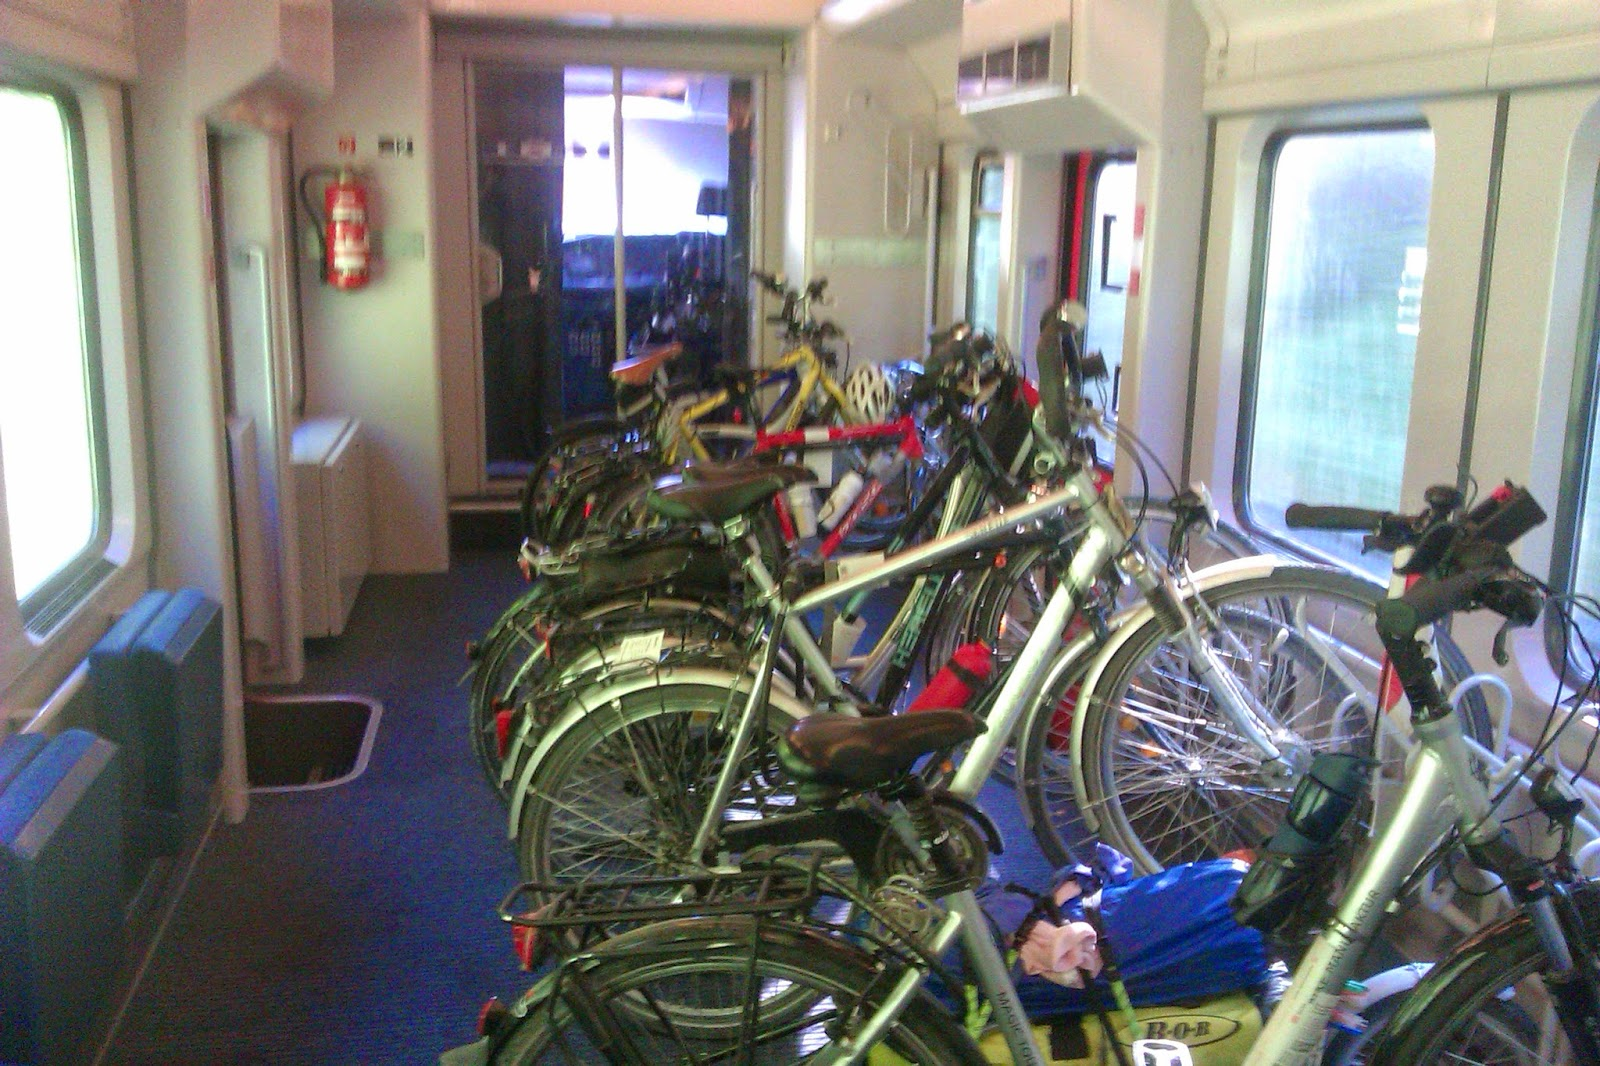 Bike stands train Inter-city Passau - Hamburg